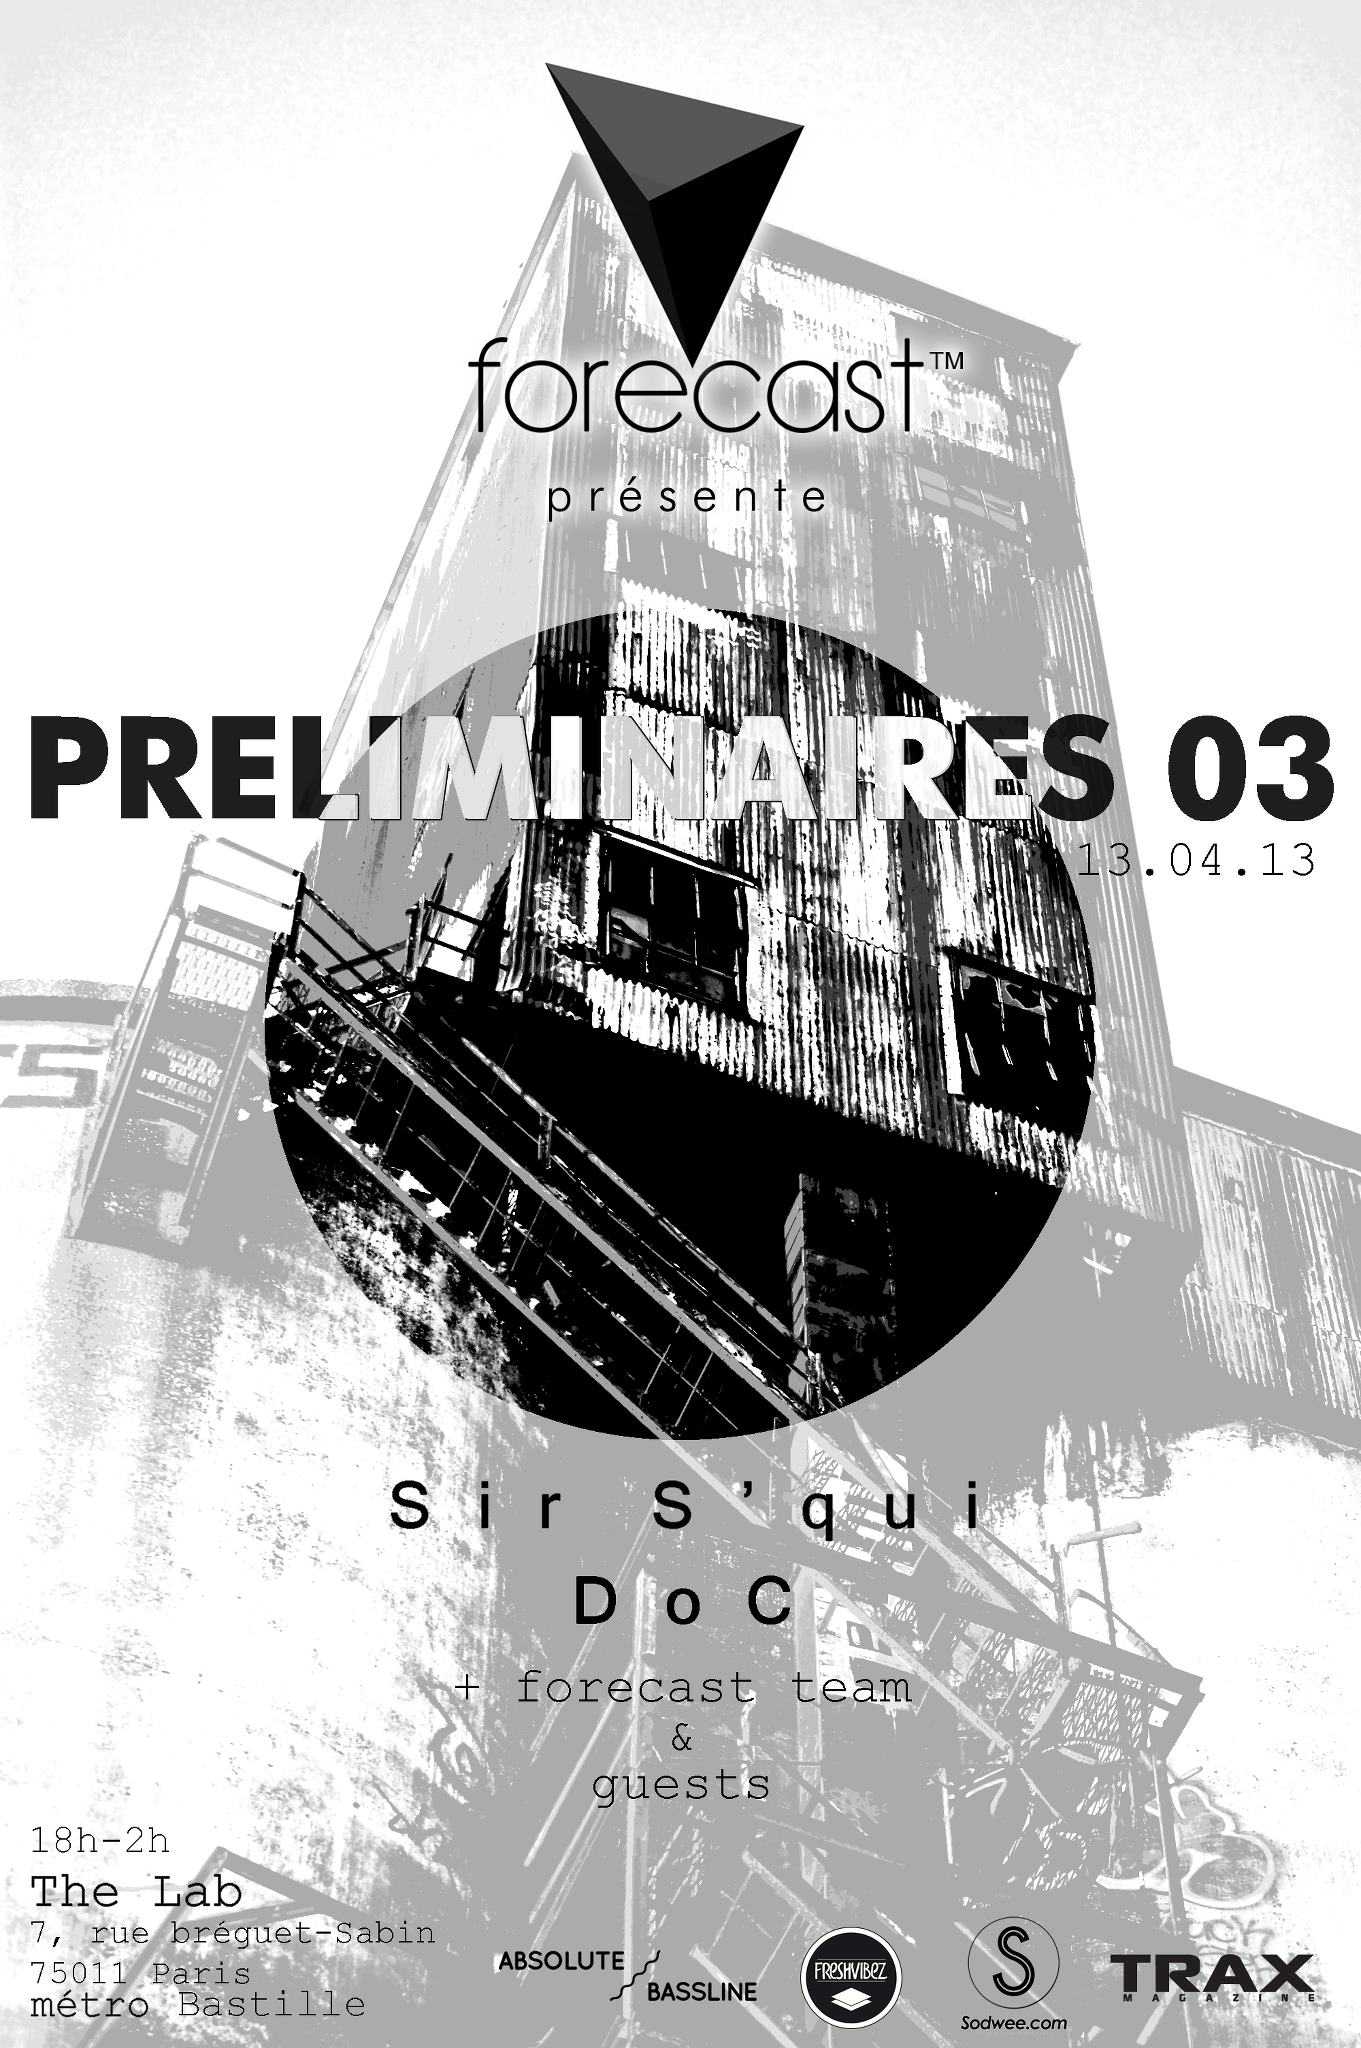 forecast - PRELIMINAIRE 03 at The Lab